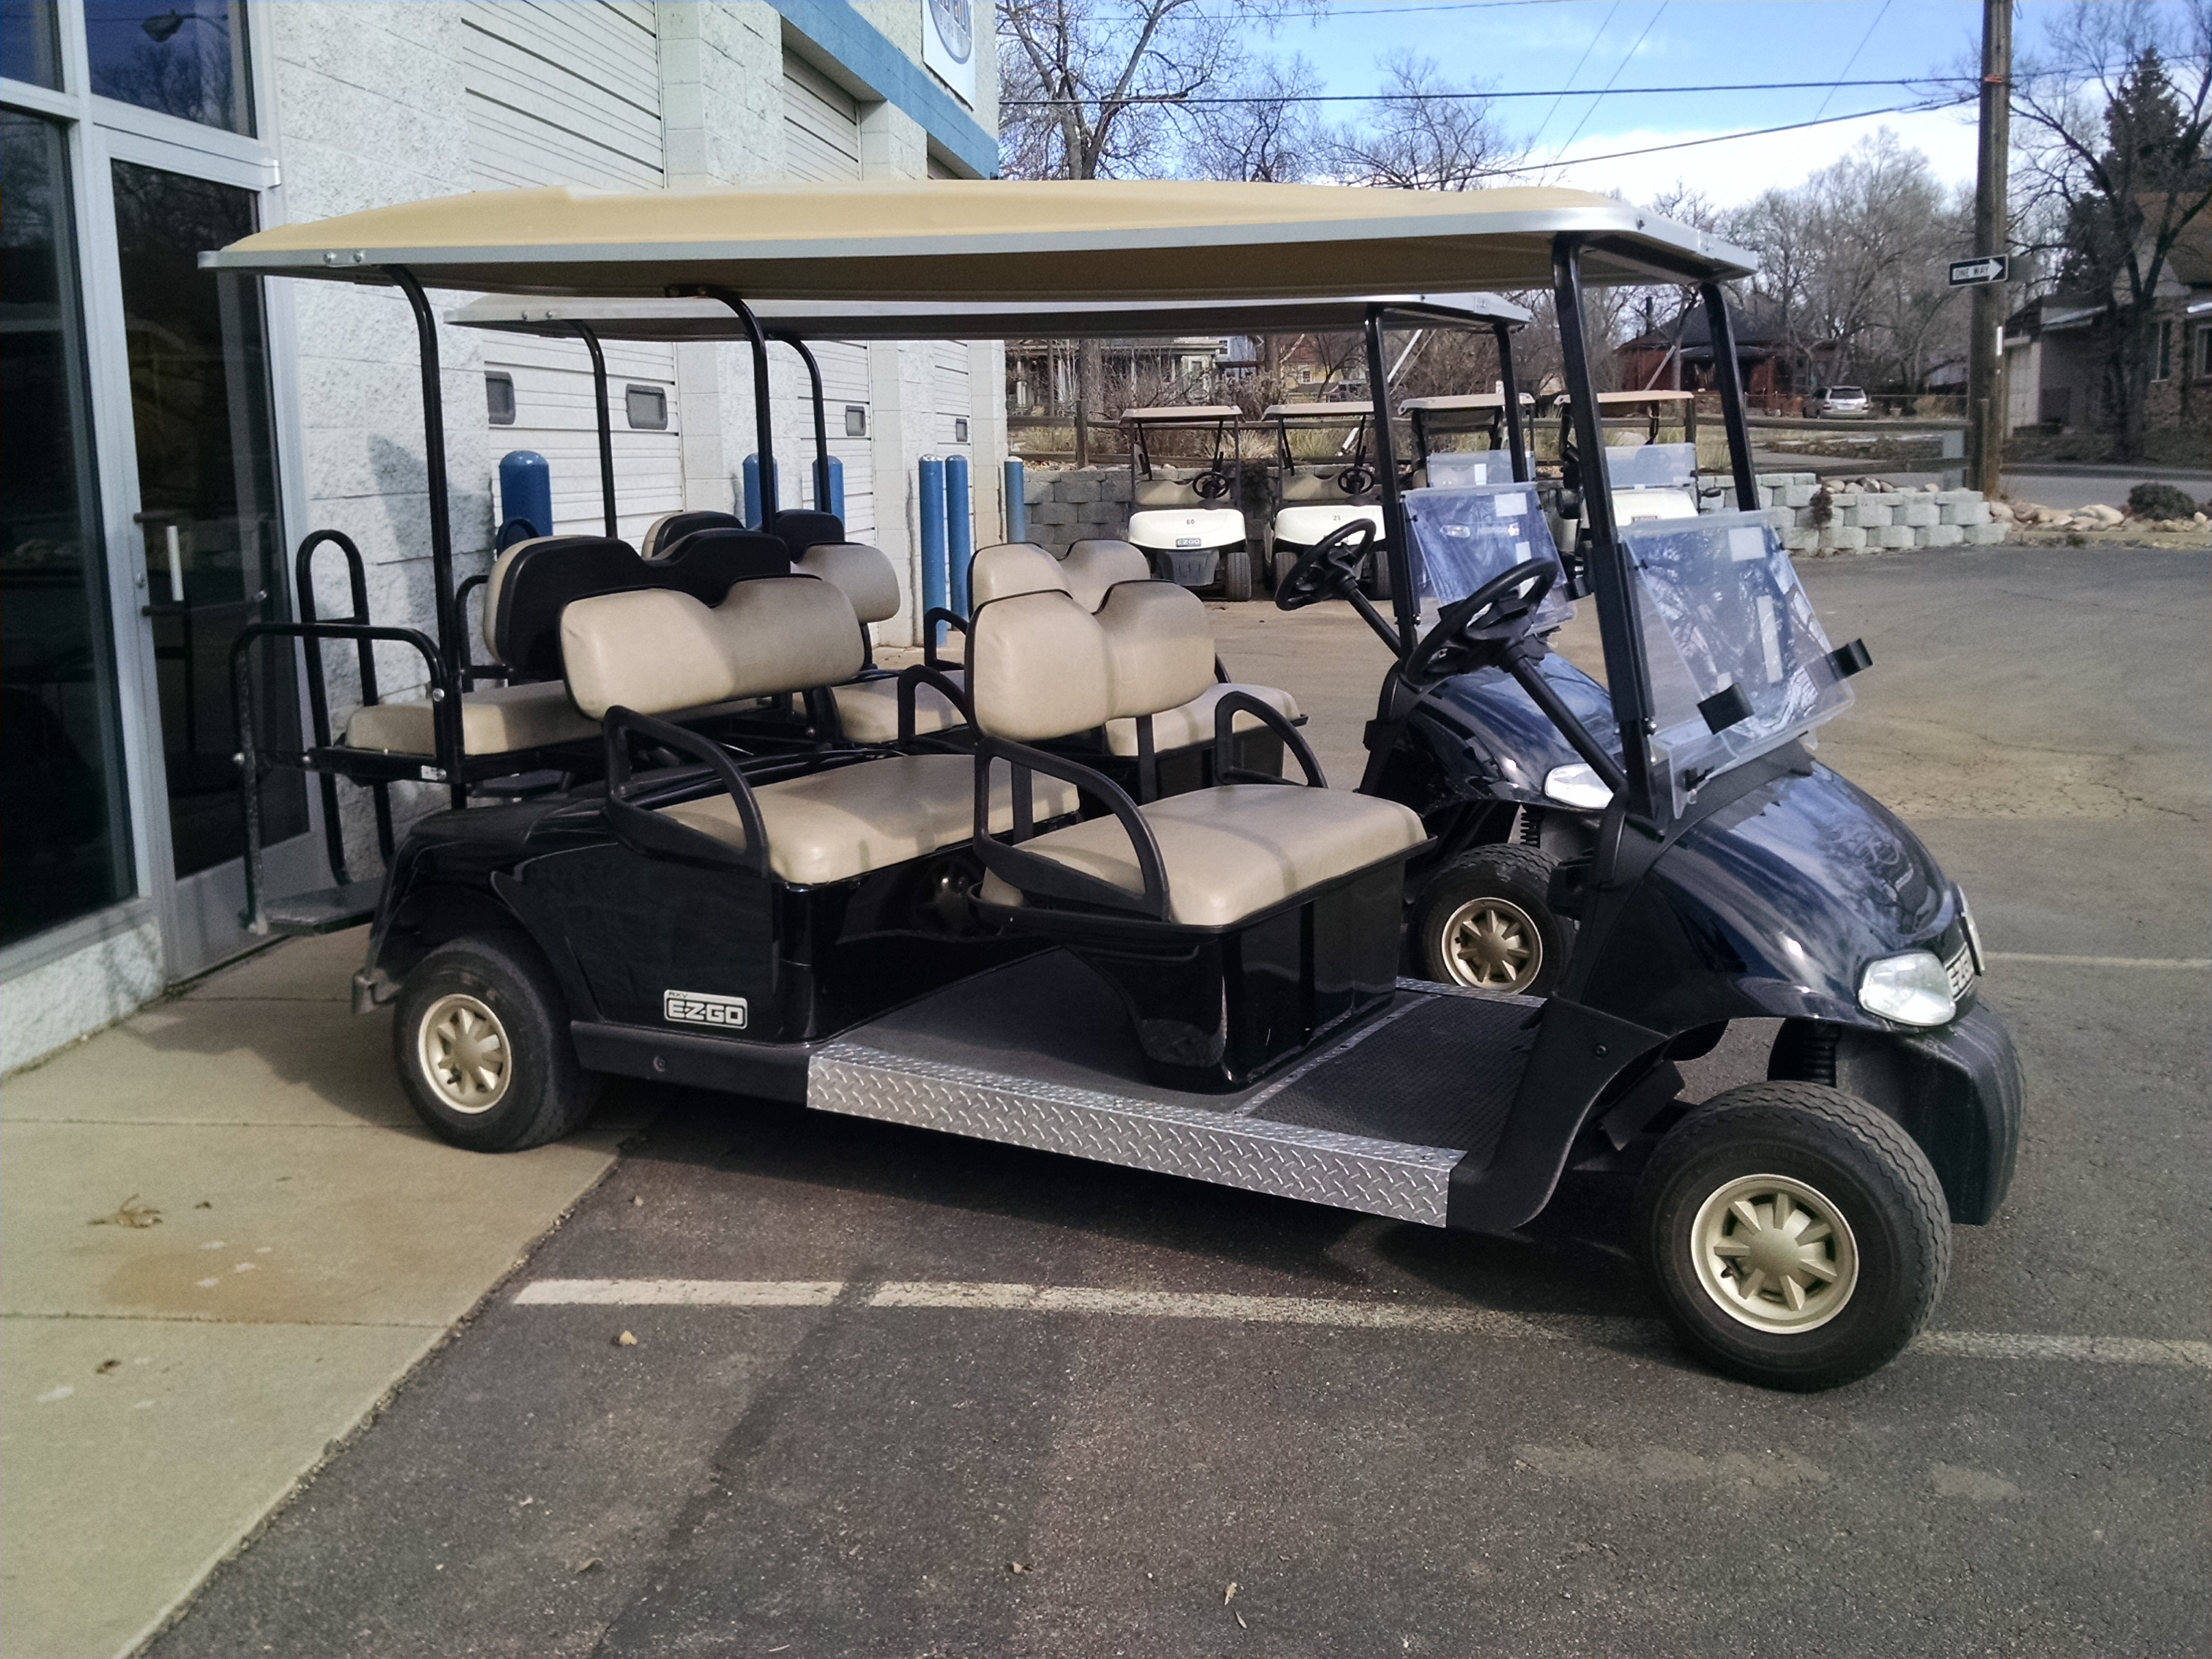 2013 RXV 6 Penger Shuttle | Master Quality Carts is Southern ... Custom Rxv Seater Golf Cart on electric golf cart 6 seater, ezgo 6 seater, honda golf cart 6 seater, gas golf cart 6 seater, yamaha 6 seater, ez go golf cart 6 seater,